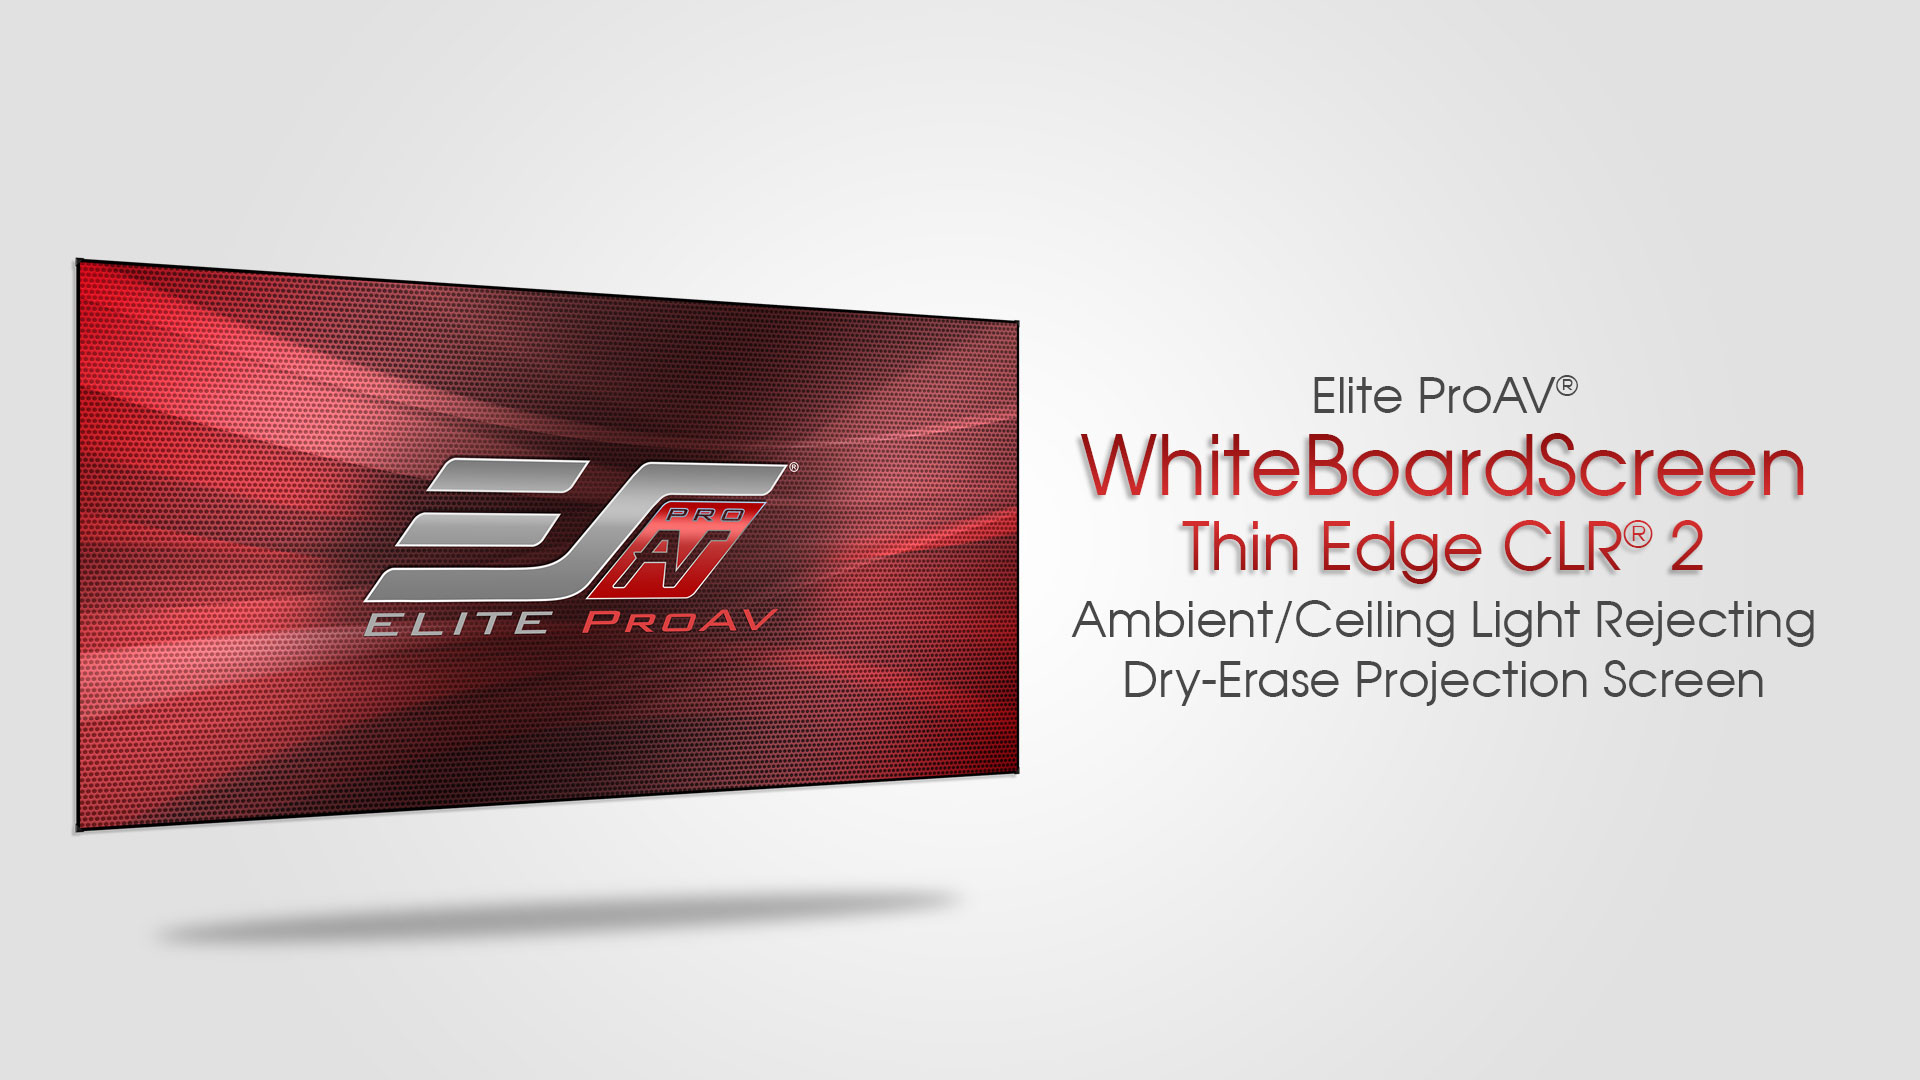 WhiteBoardScreen™ Thin Edge CLR® 2 Product Video